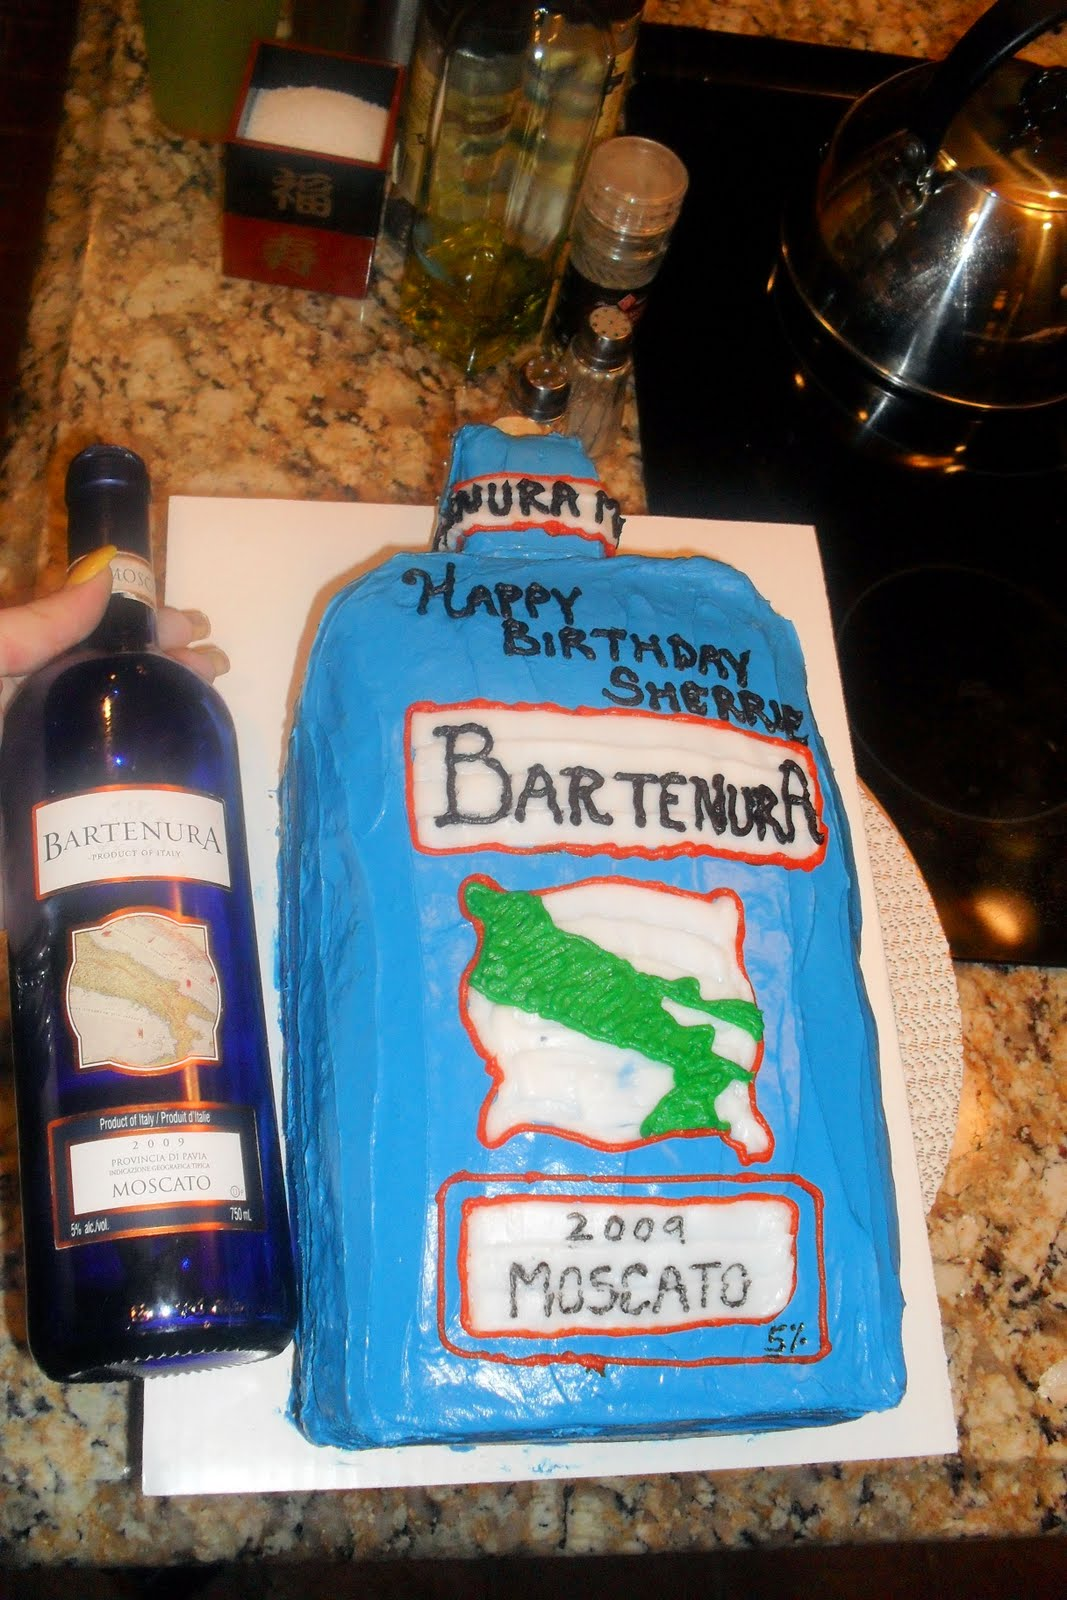 This Kake Was Supposed To Replicate Particular Bottle Of Moscato Wine It Is A 4 Layer Yellow With Cream Cheese Frosting The Edges On Top